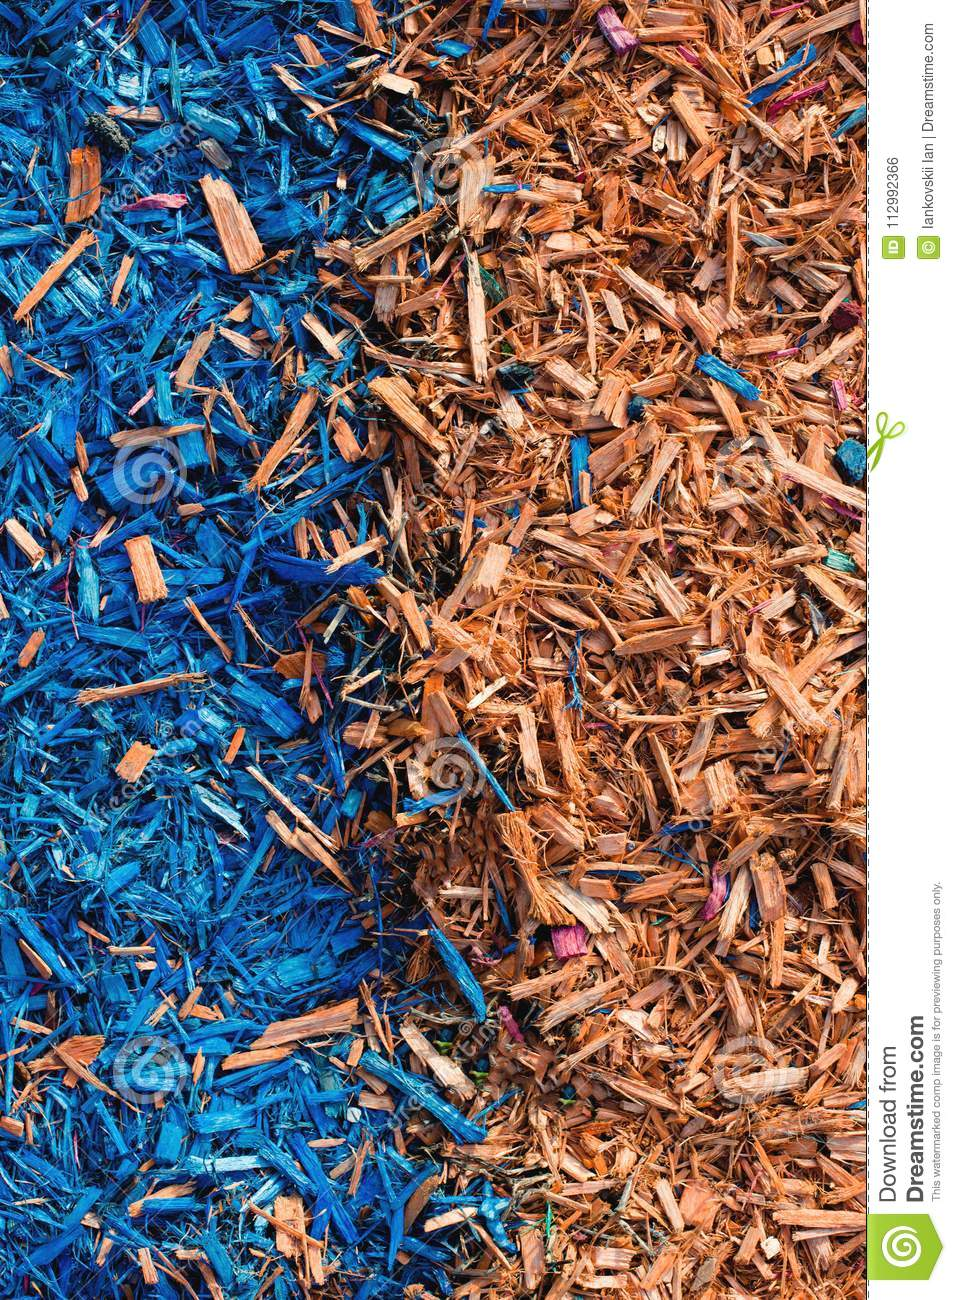 Textured background decorative colored sawdust for finishing flowerbeds in the winter season. Yellow orange sawdust